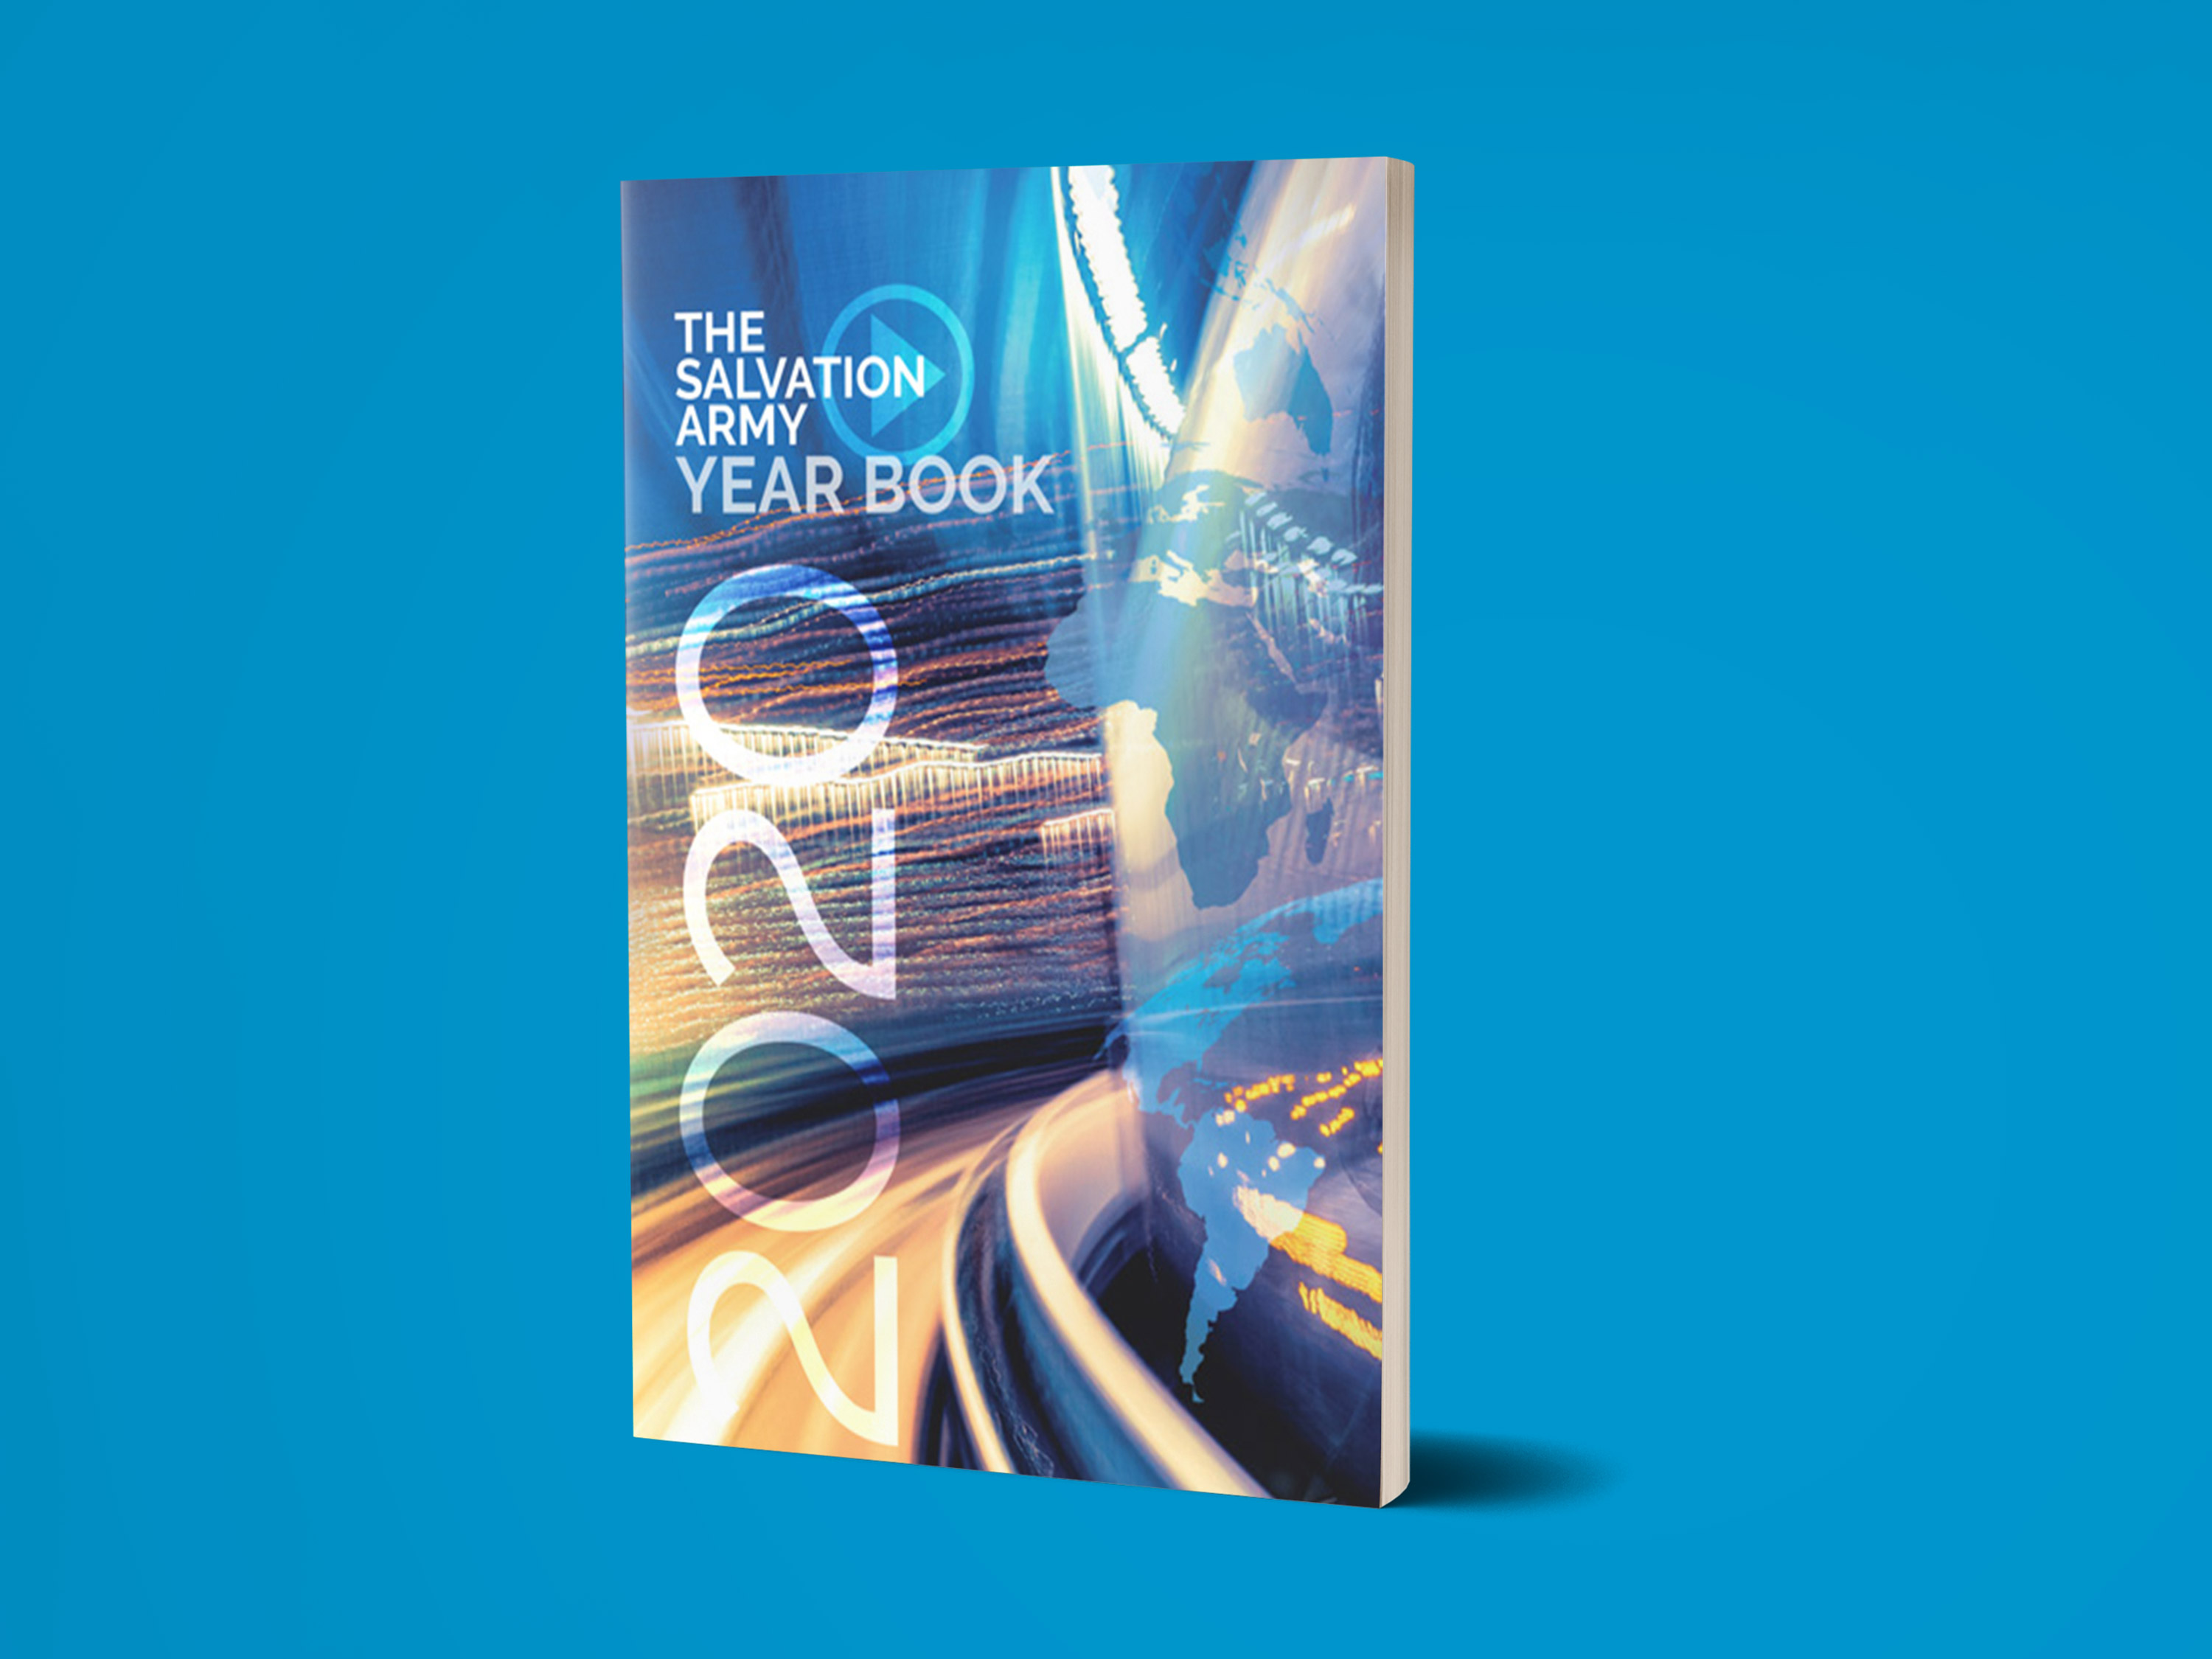 The Salvation Army Year Book